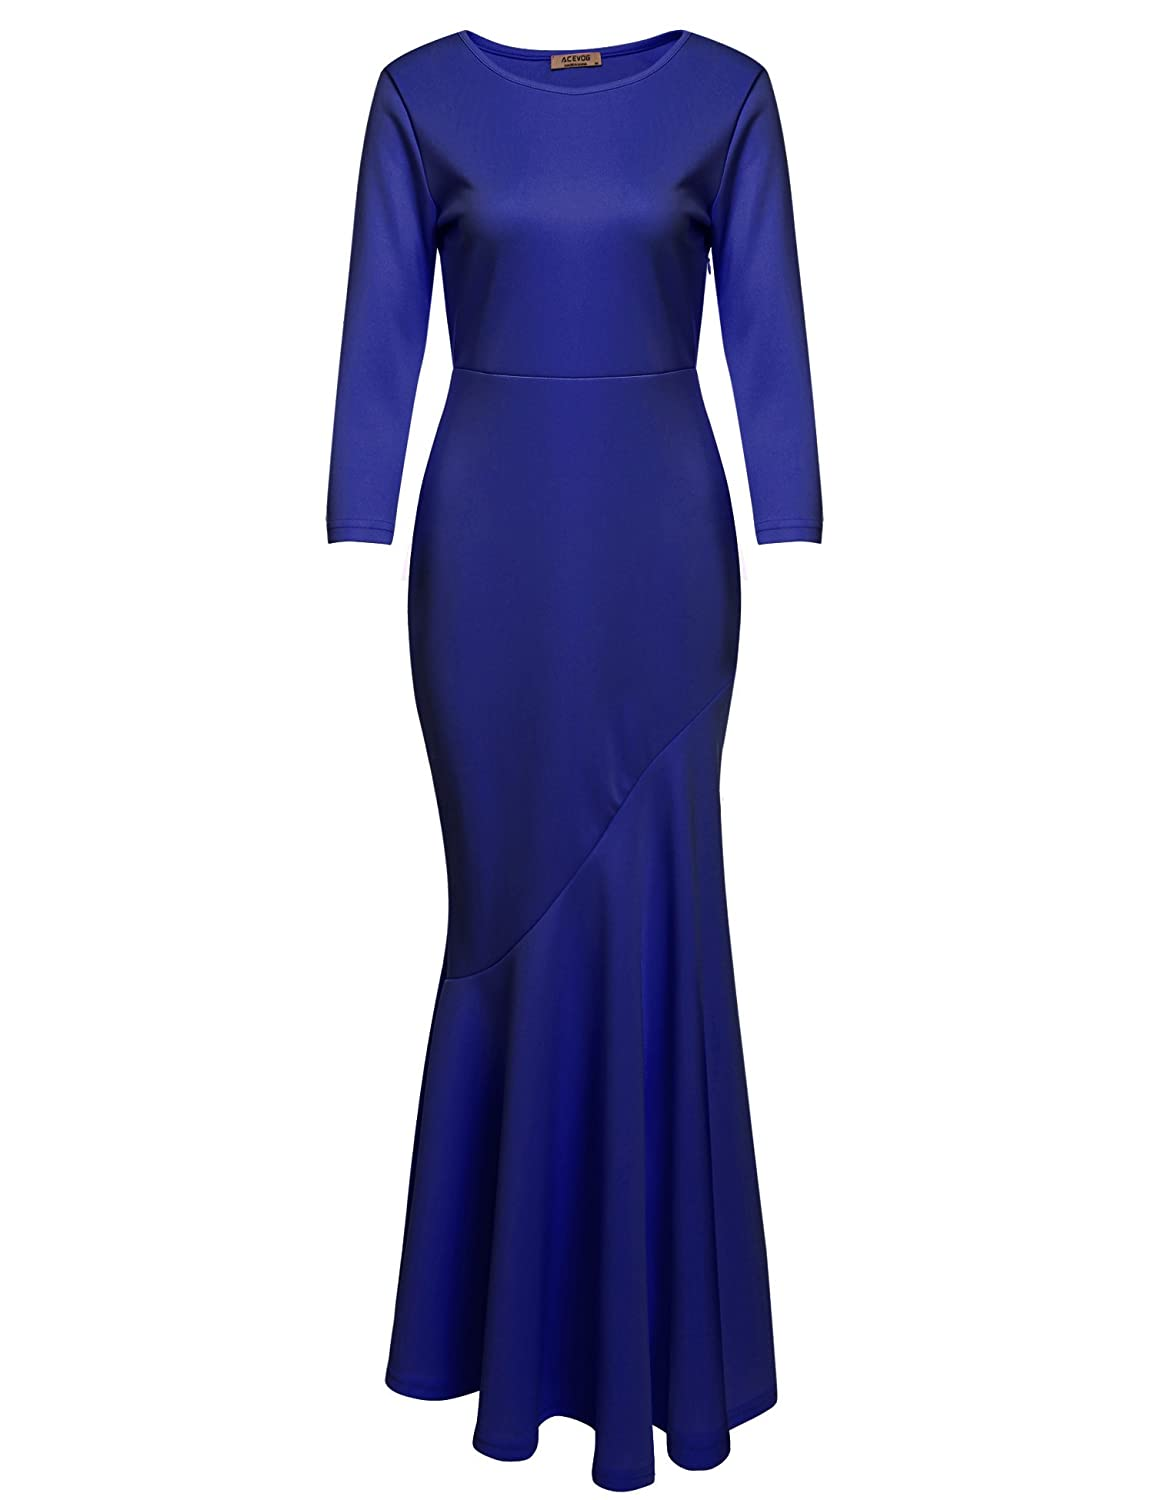 1930s Evening Dresses | Old Hollywood Silver Screen Dresses ACEVOG Womens 30s Brief Elegant Mermaid Evening Dress Bodycon Evening Gown $21.99 AT vintagedancer.com